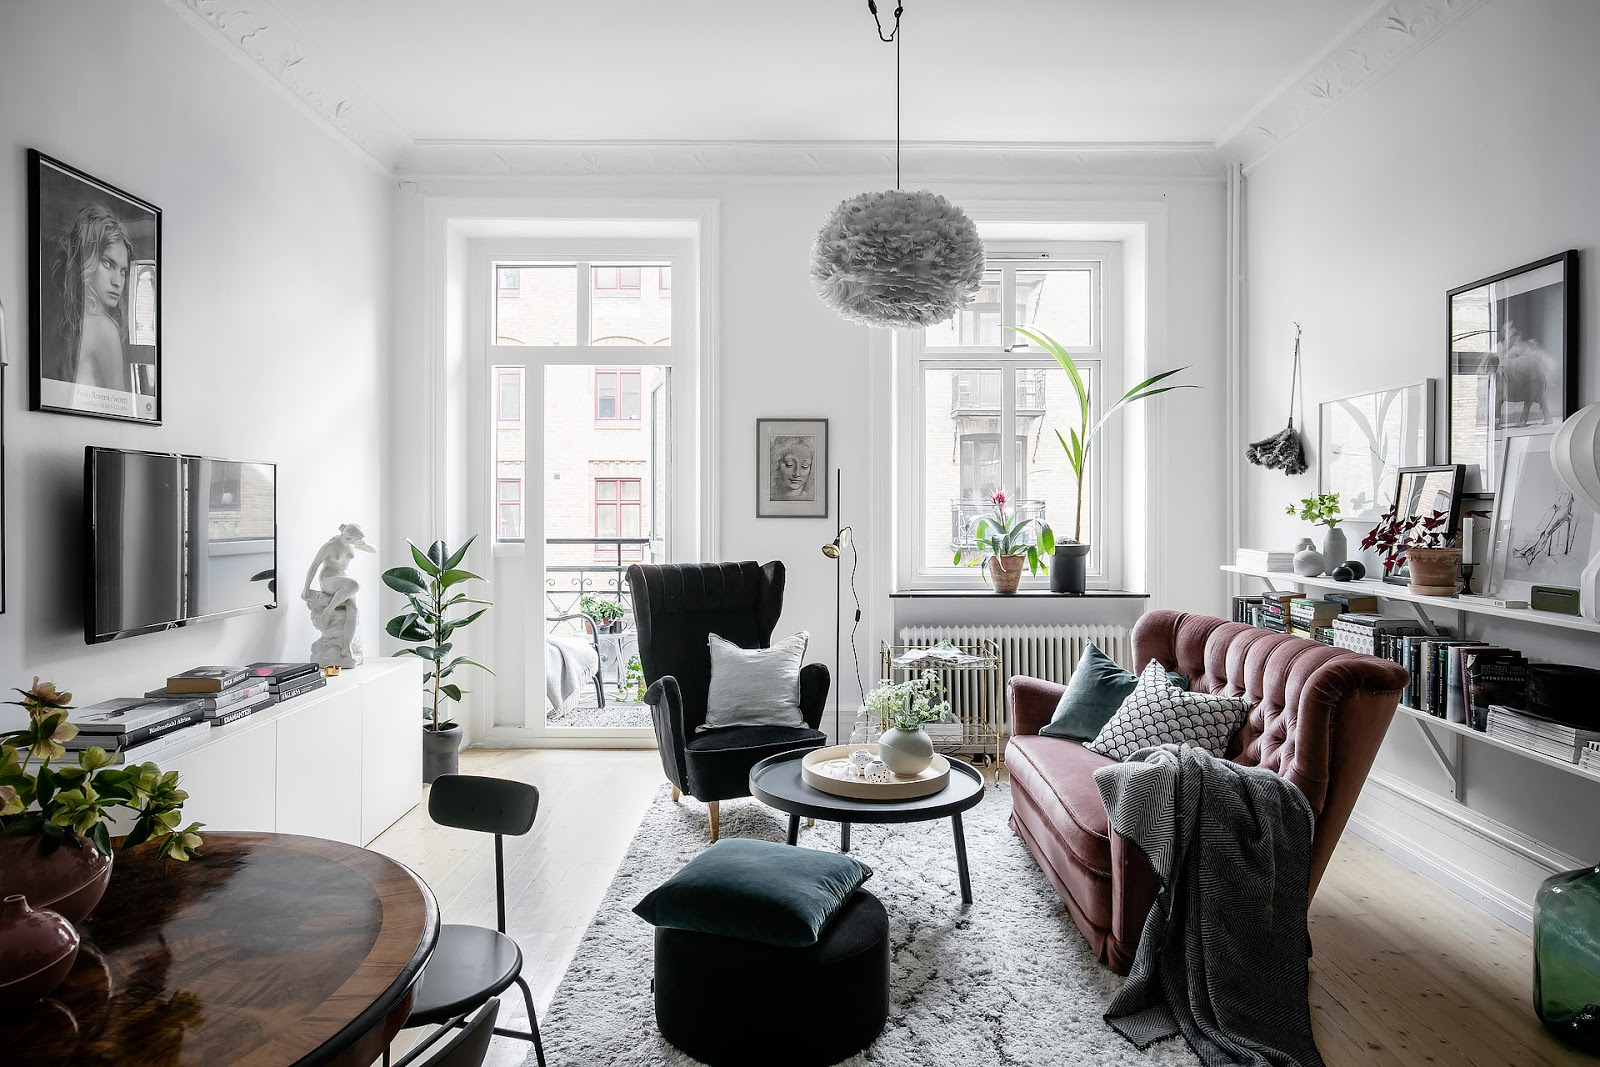 small  scandinavian apartment with  gray kitchen, white floors, pink sofa